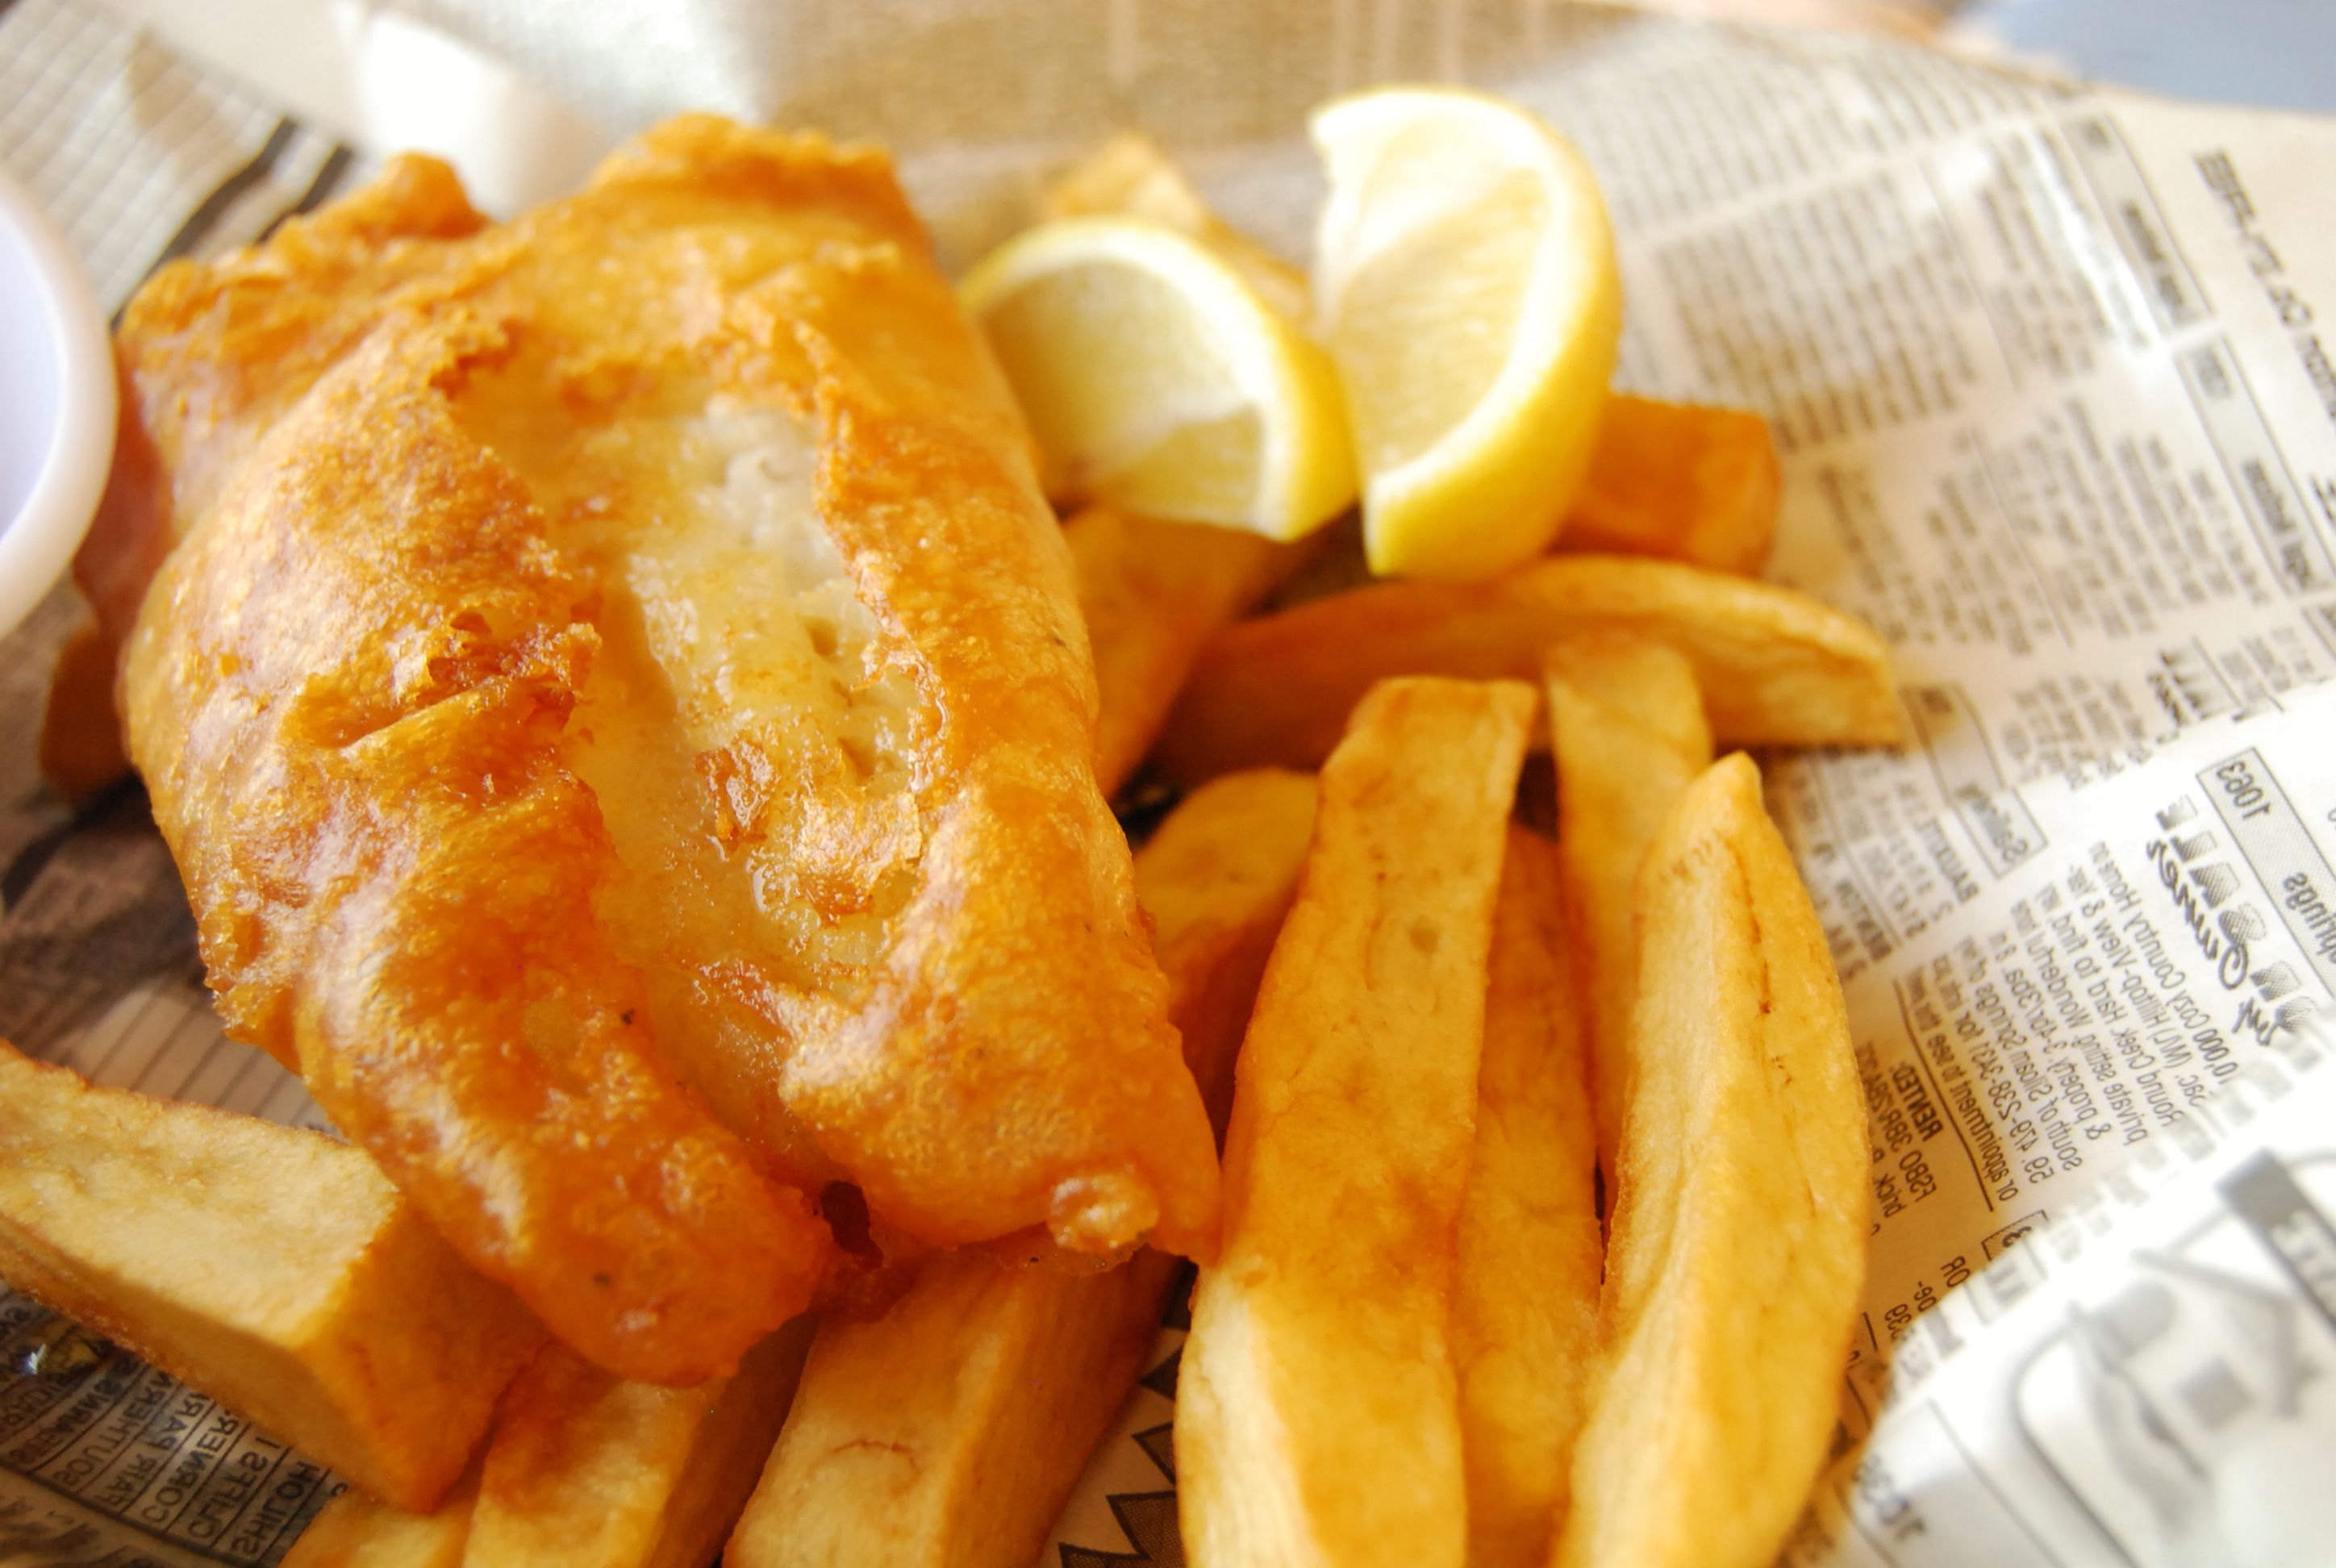 Modern_fish_and_chips__8368723726__edit